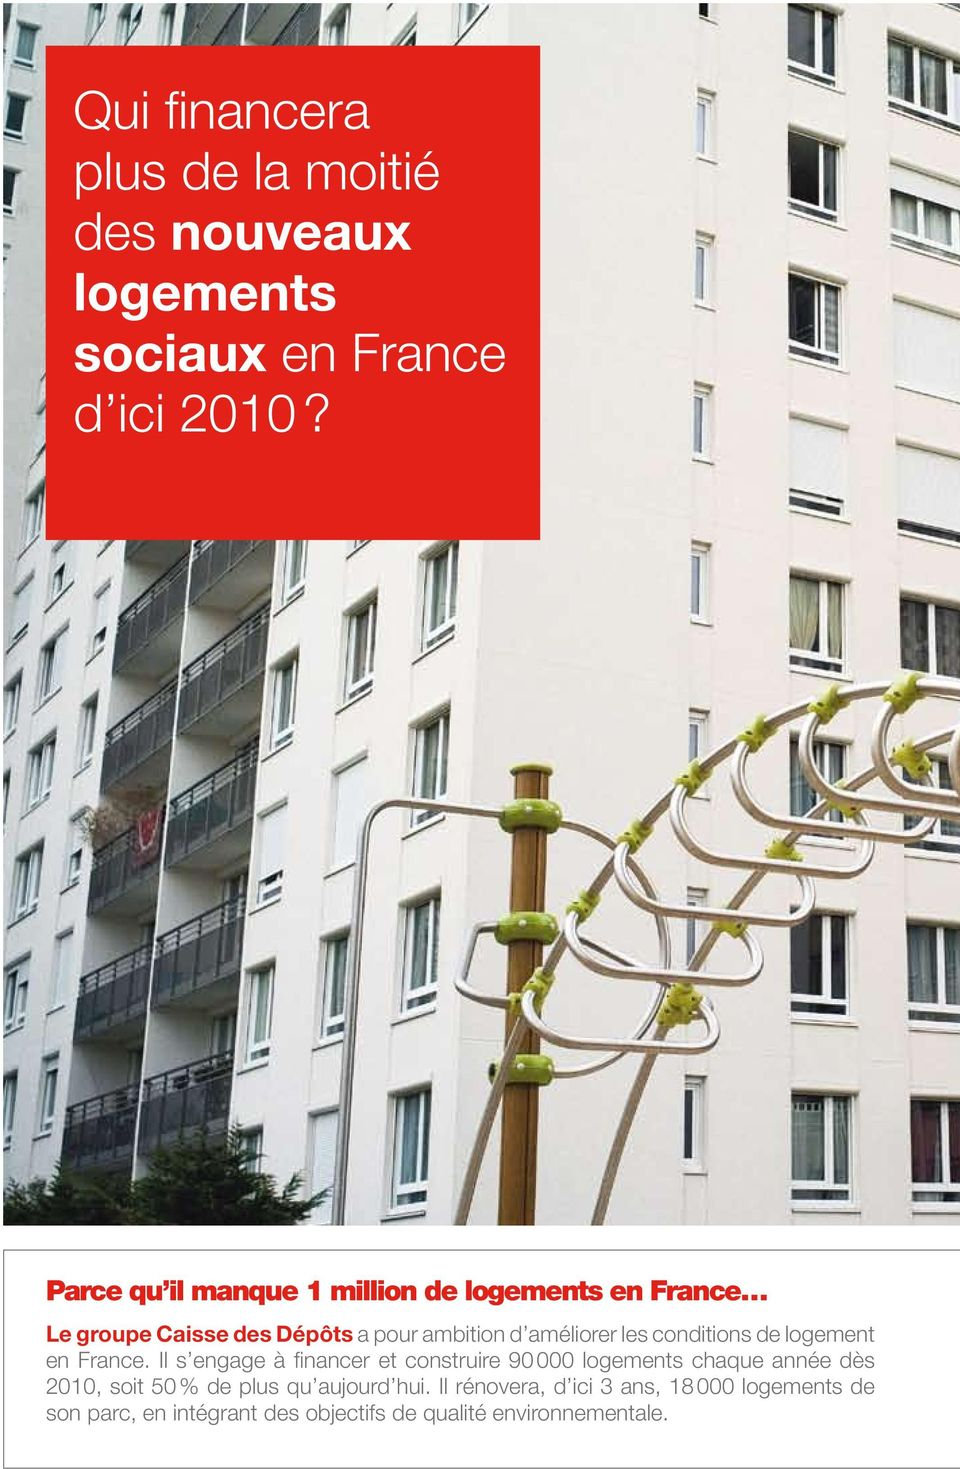 conditions de logement en France.